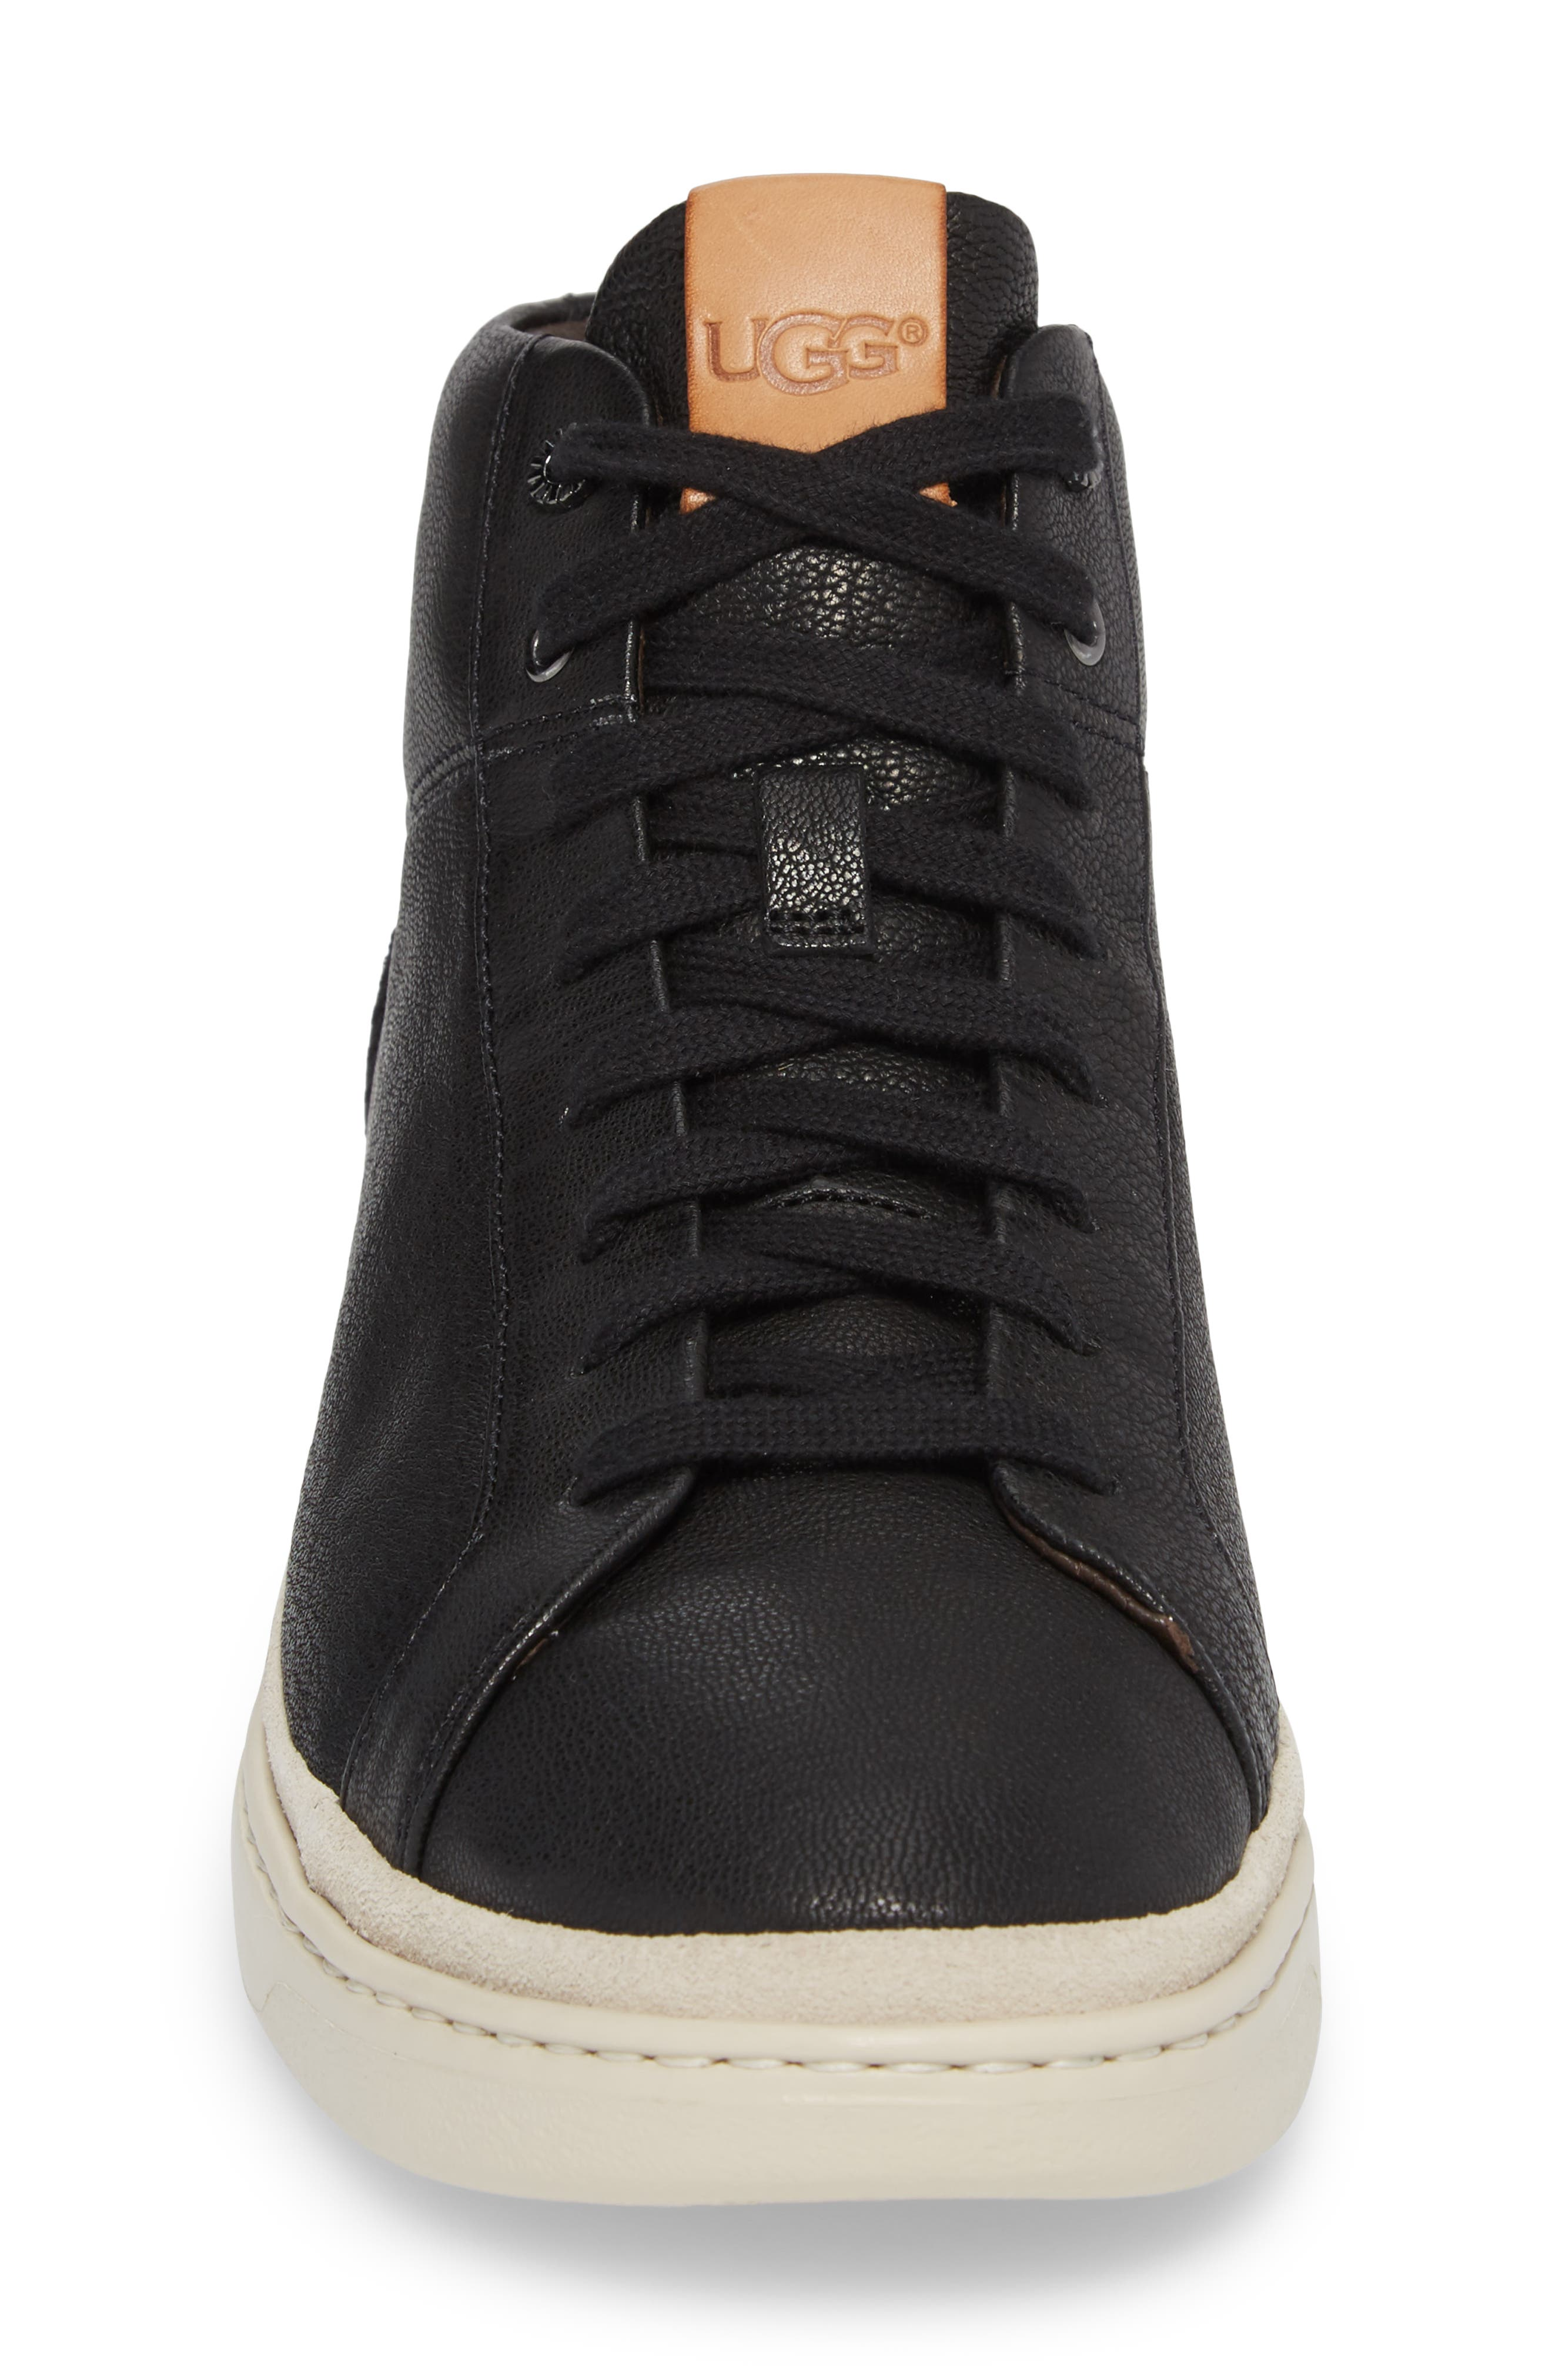 Cali High Top Sneaker,                             Alternate thumbnail 4, color,                             BLACK LEATHER